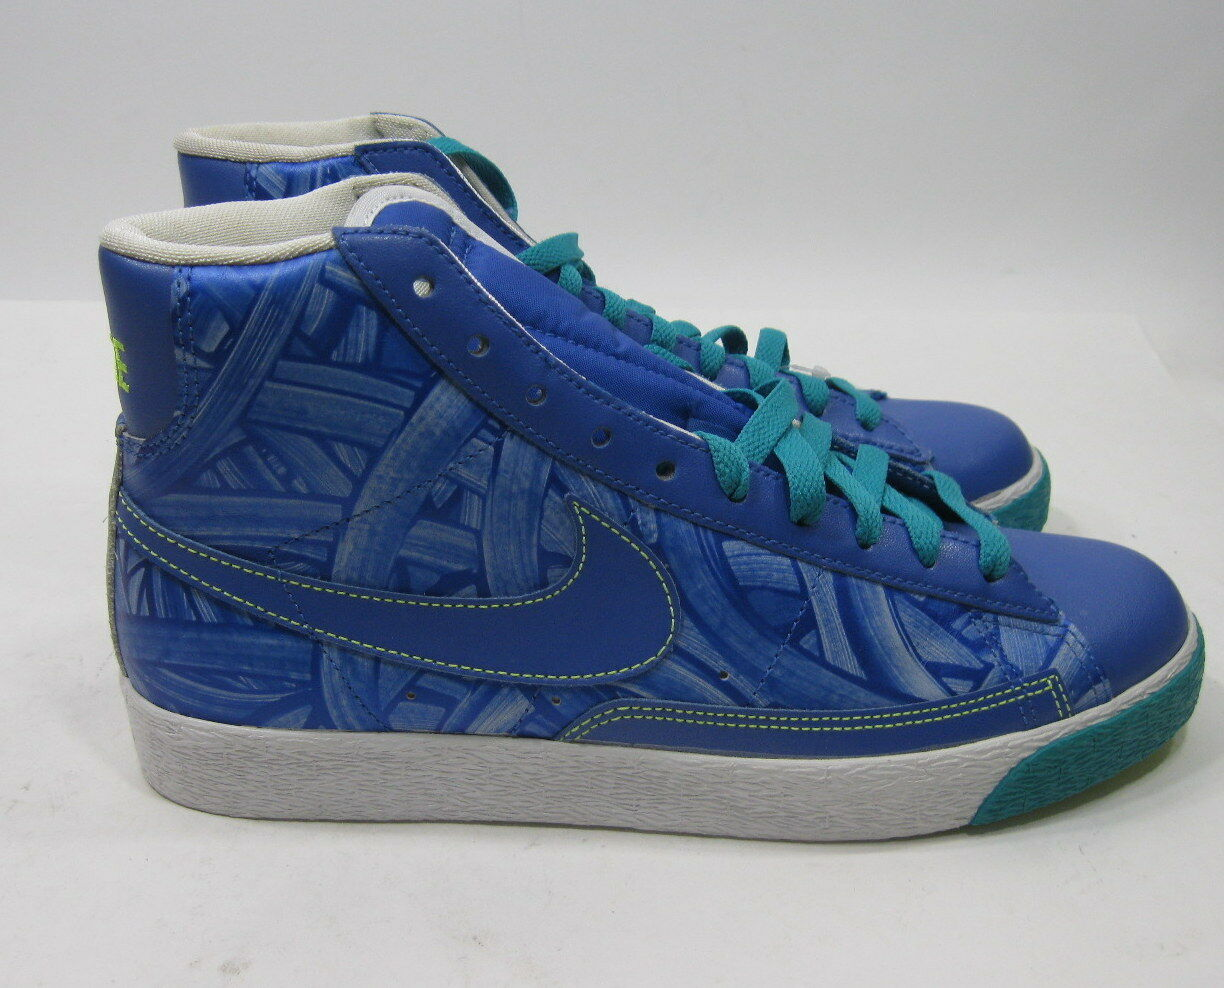 Nike Wmns Blazer High Ds shoes 317808-400 Size Size Size 10 7384db